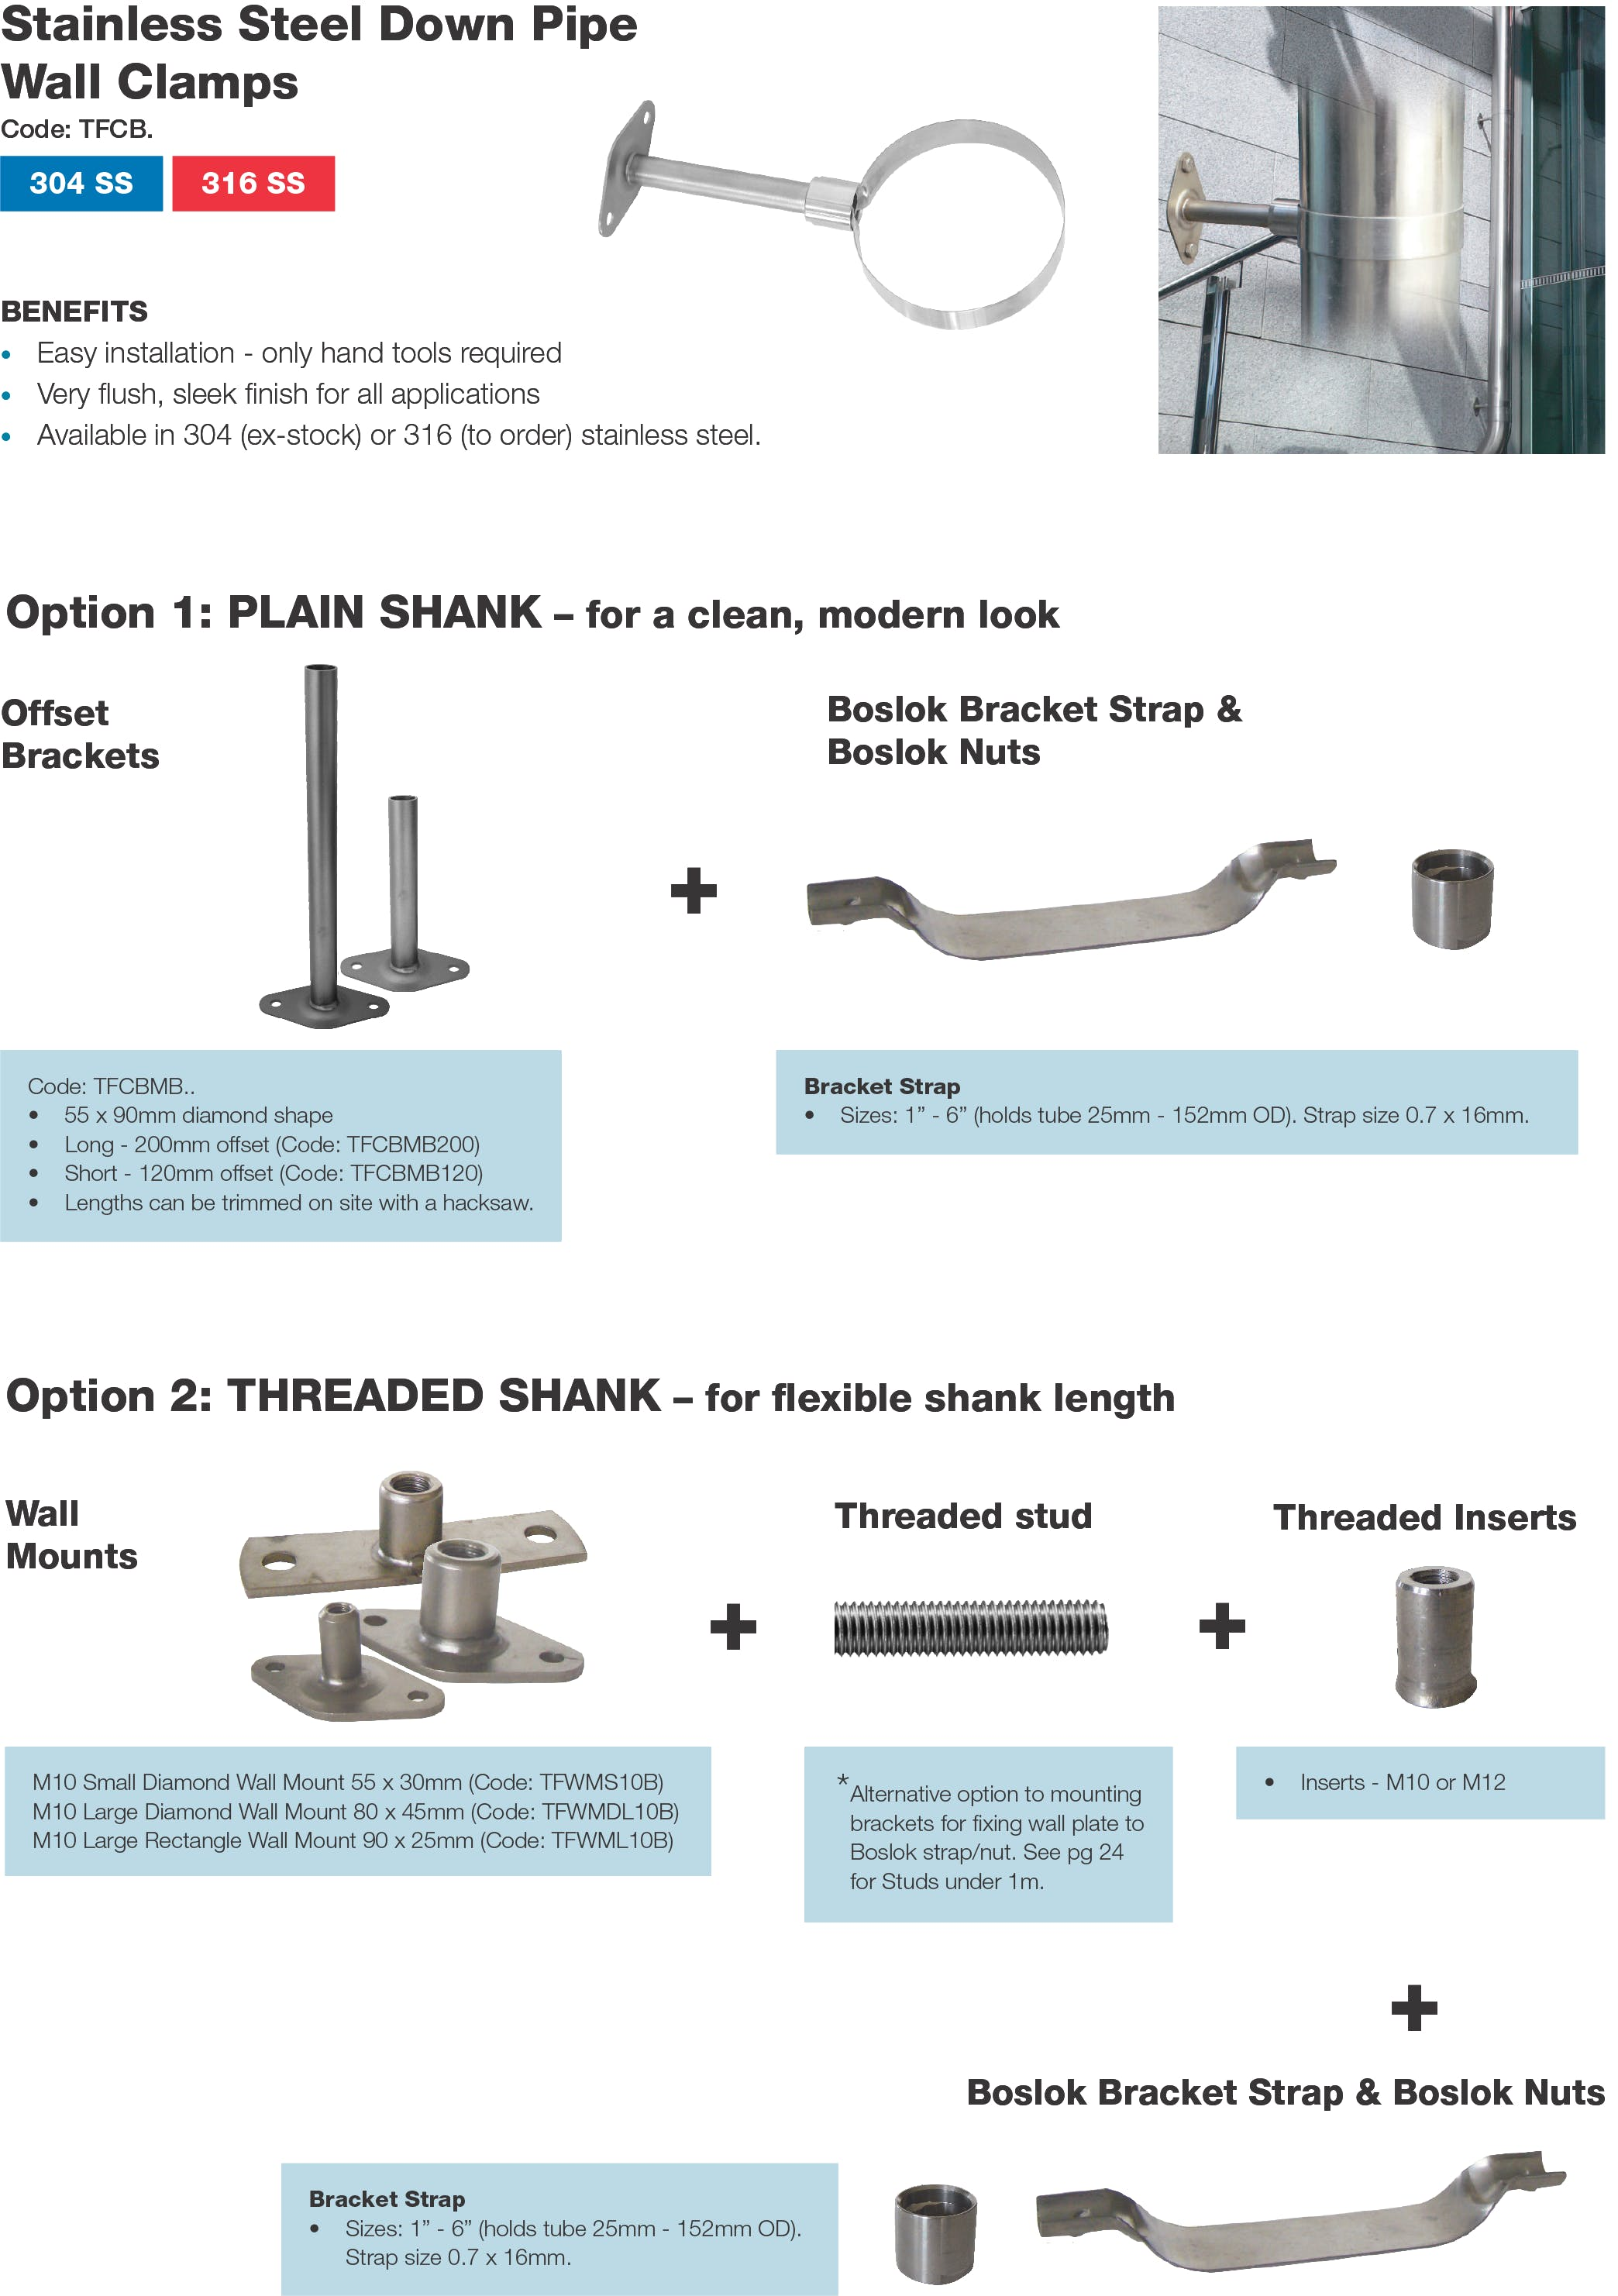 Stainless Downpipe Options